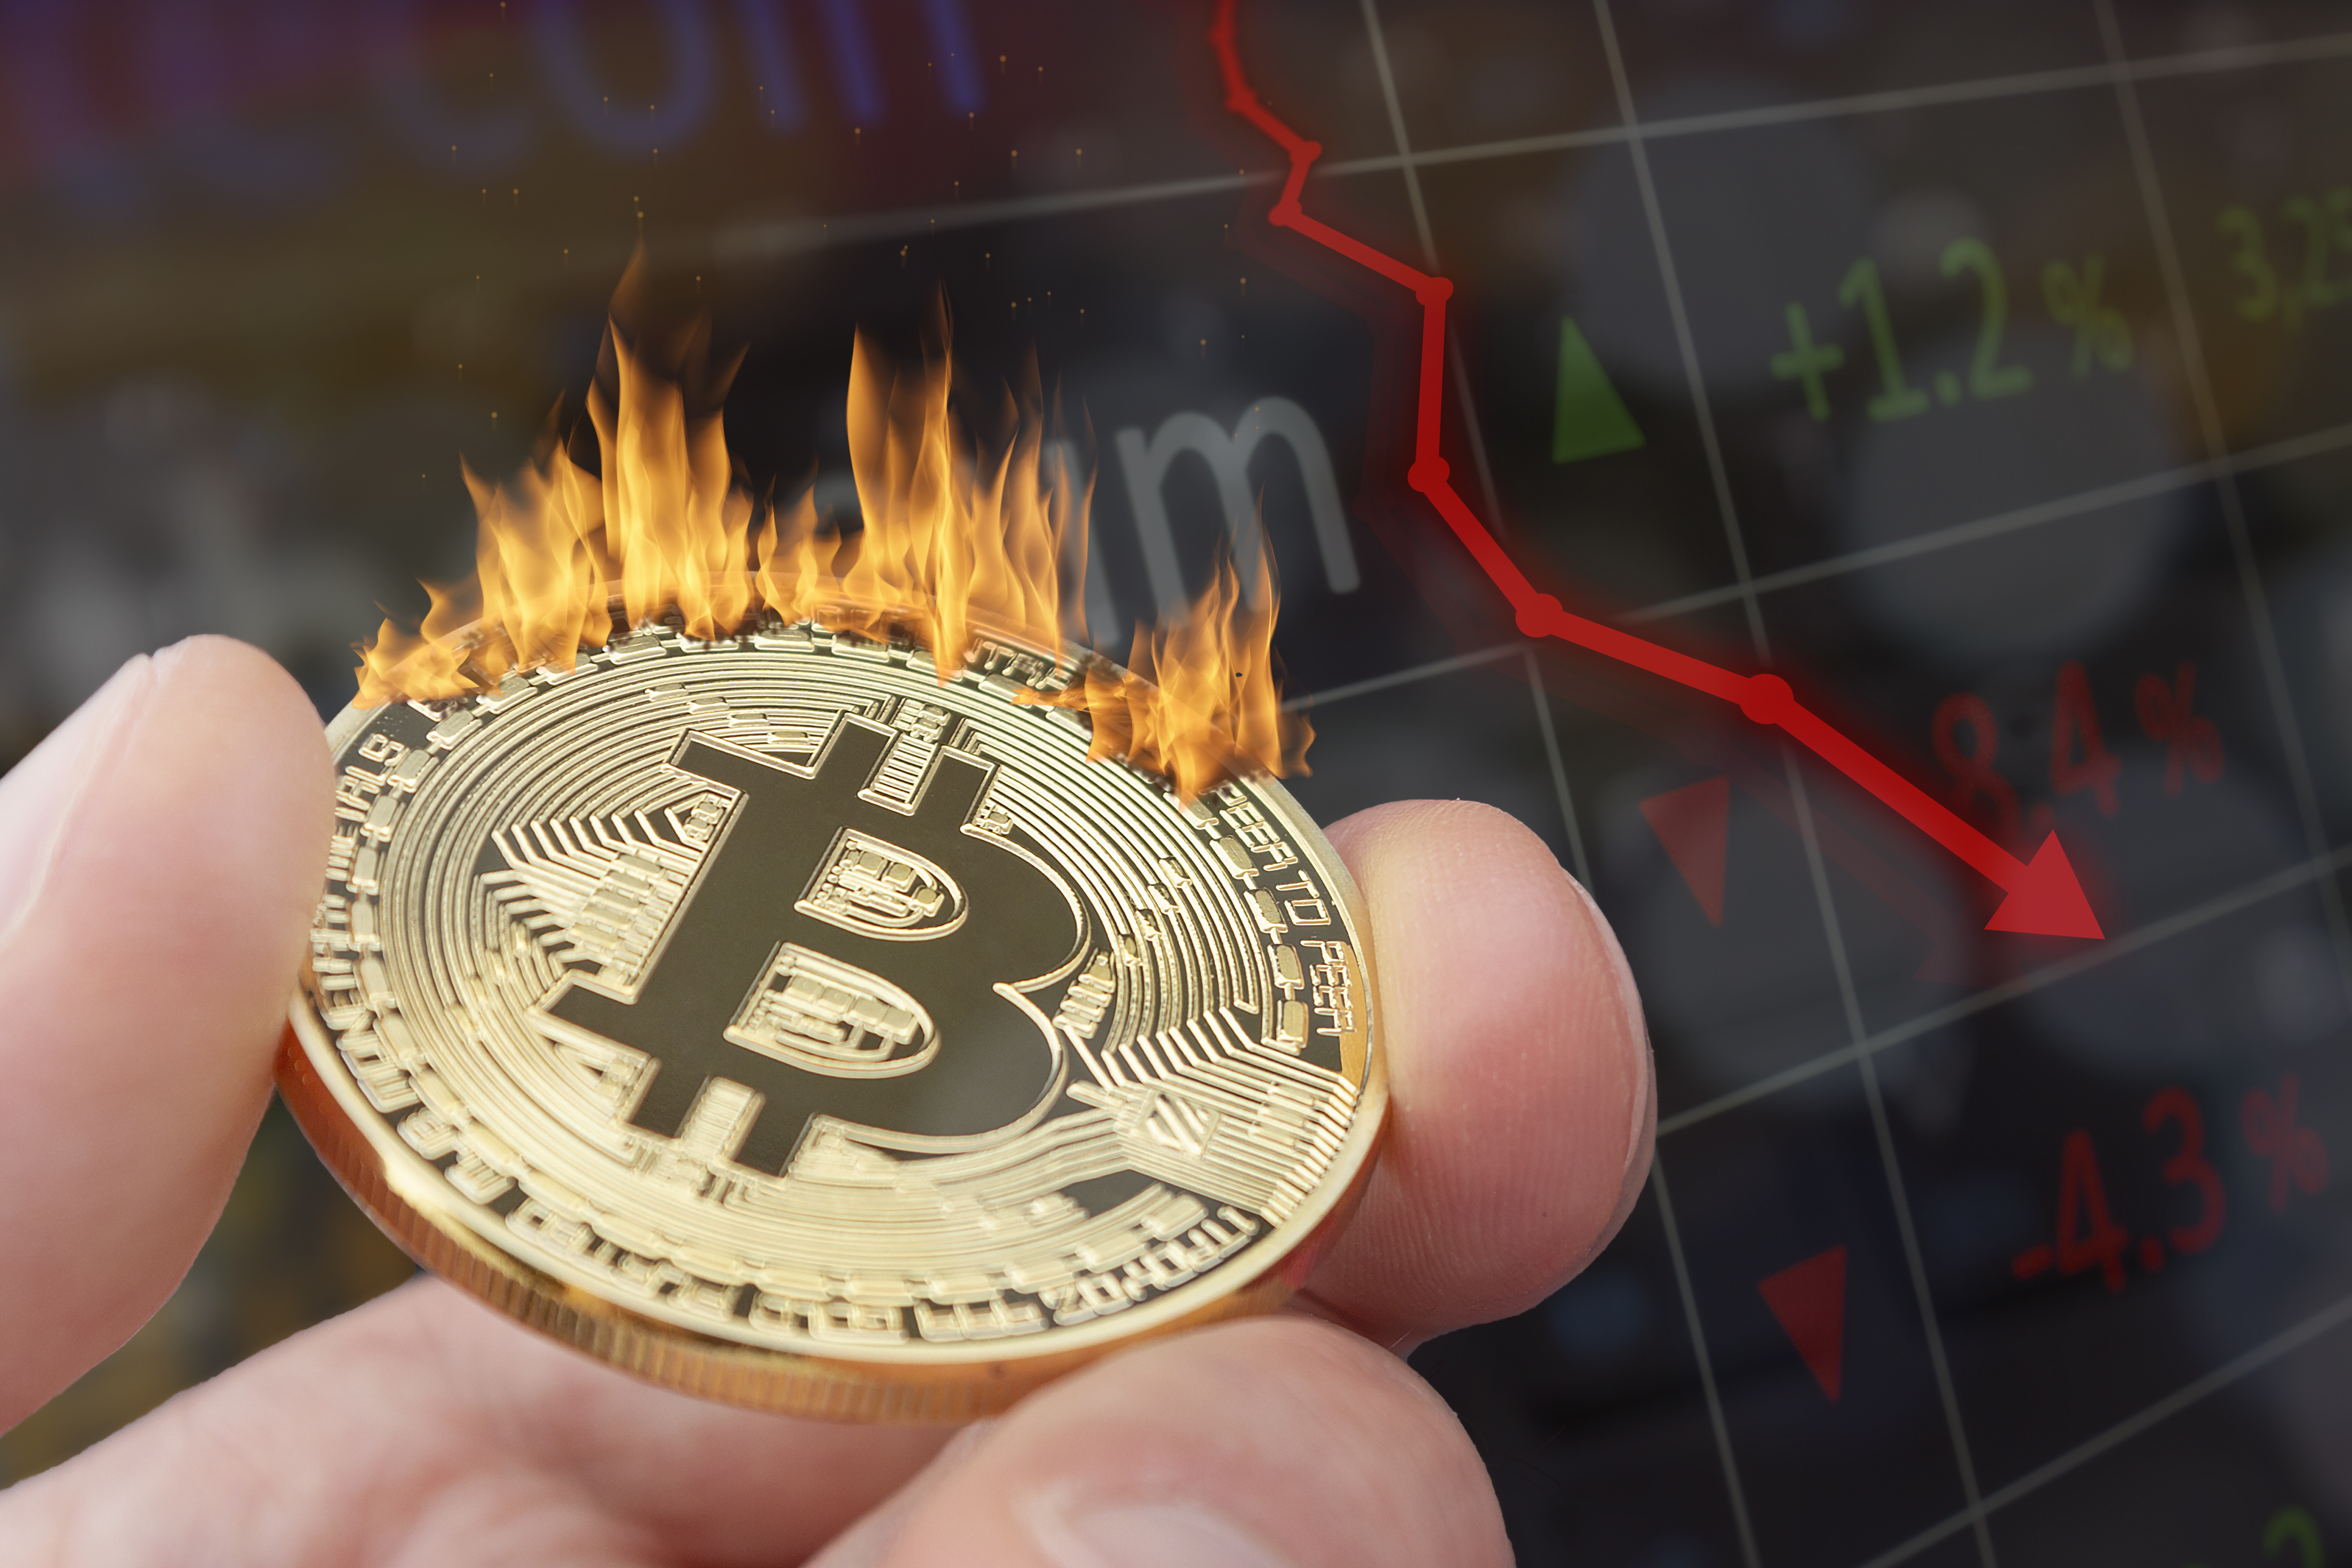 Bitcoin Plunged 20%: Why and How to Make Profits Off the Downside